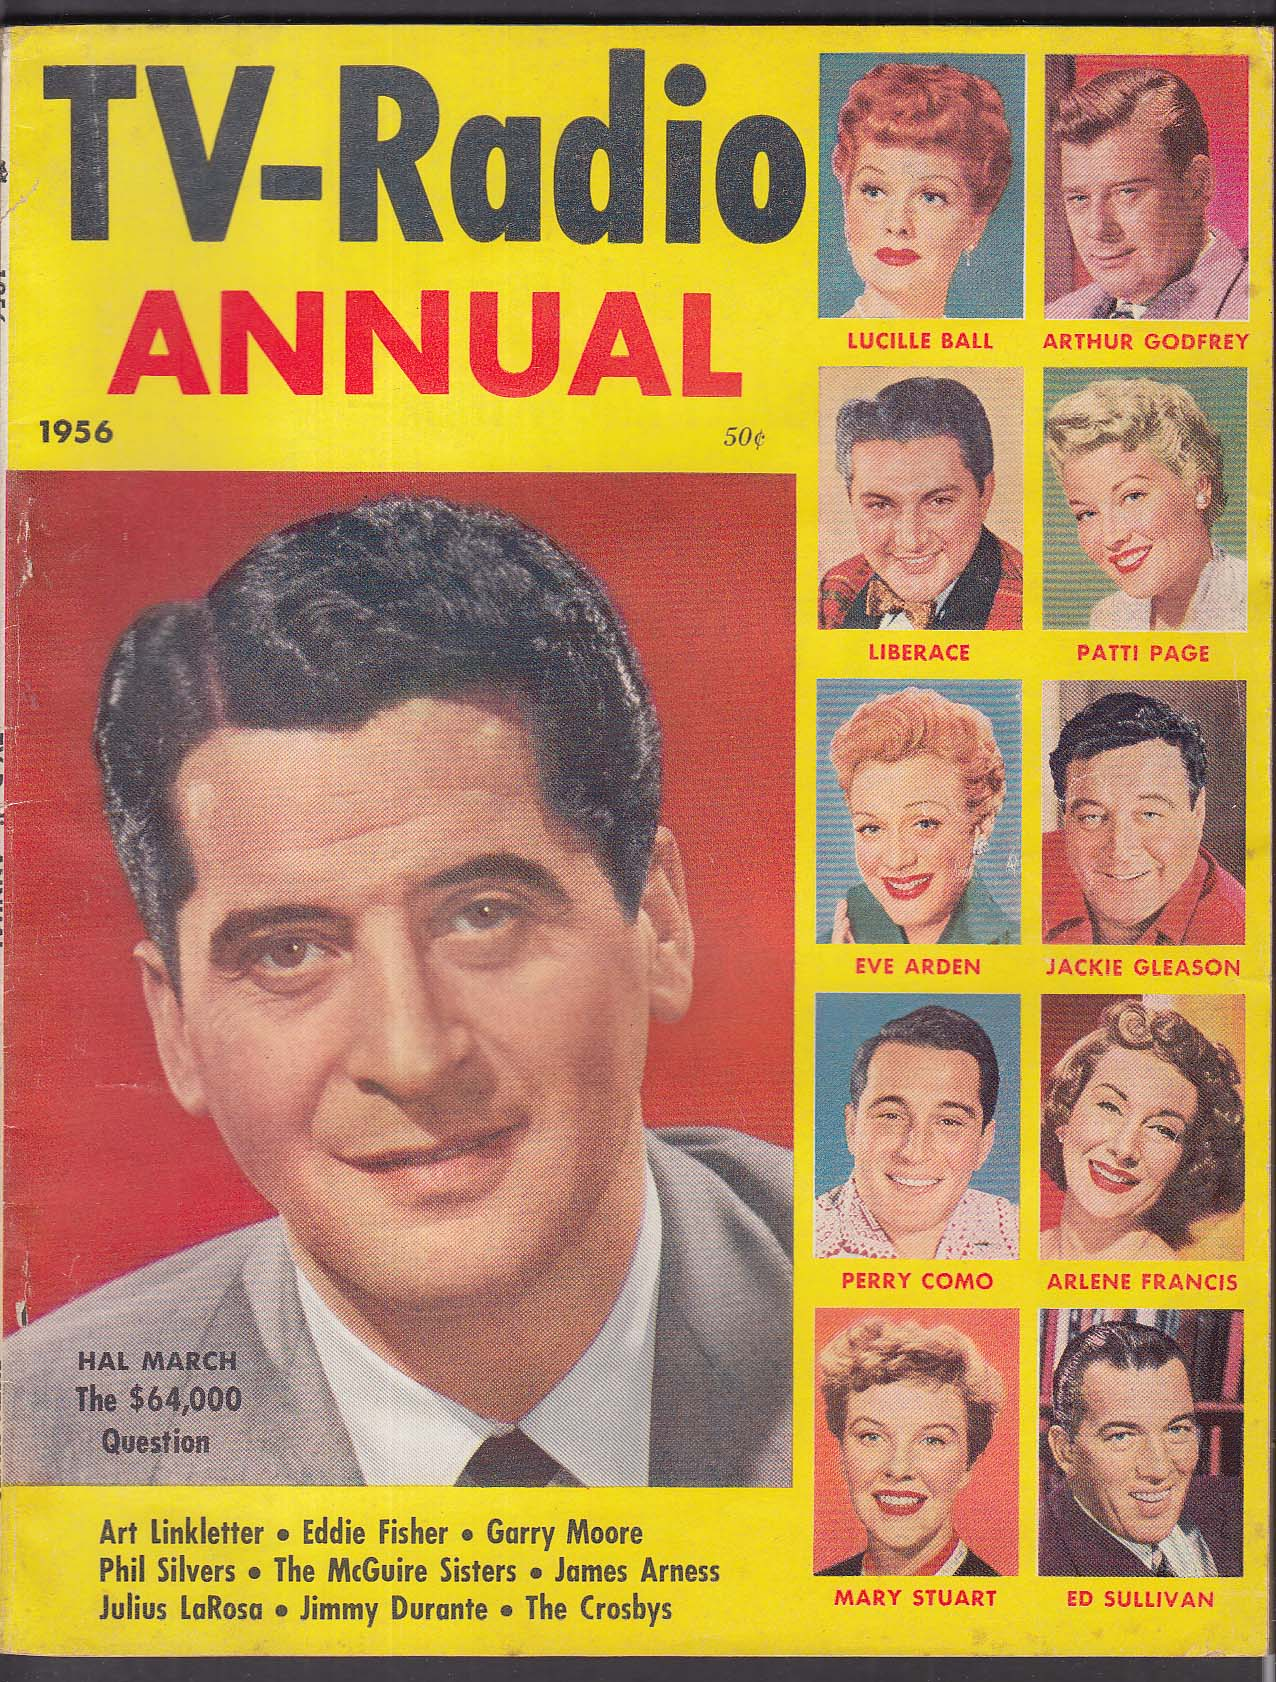 TV-RADIO ANNUAL 1956 Hal March Lucille Ball Liberace Jackie Gleason Ed Sullivan